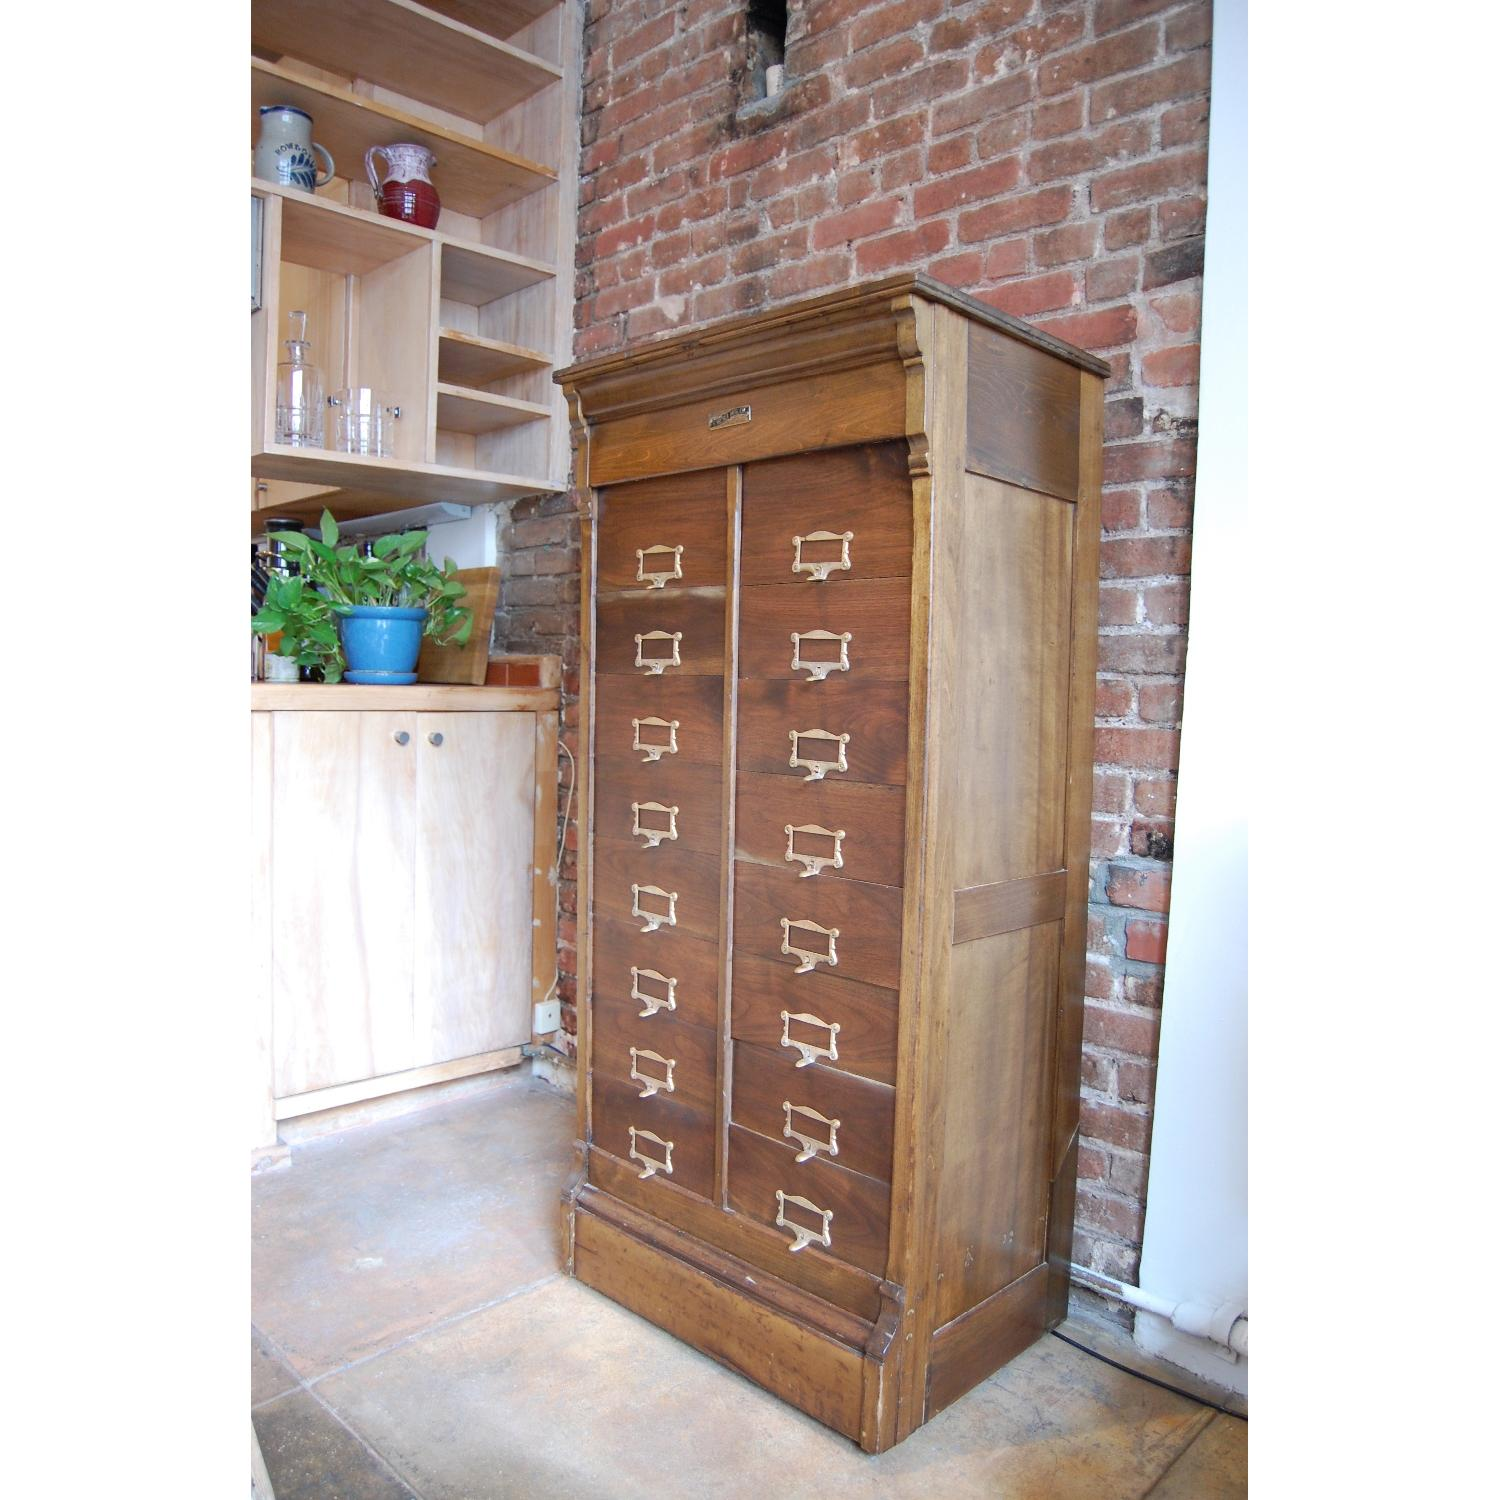 F. Wesel Manufacturing Company Tall File Cabinet - image-4